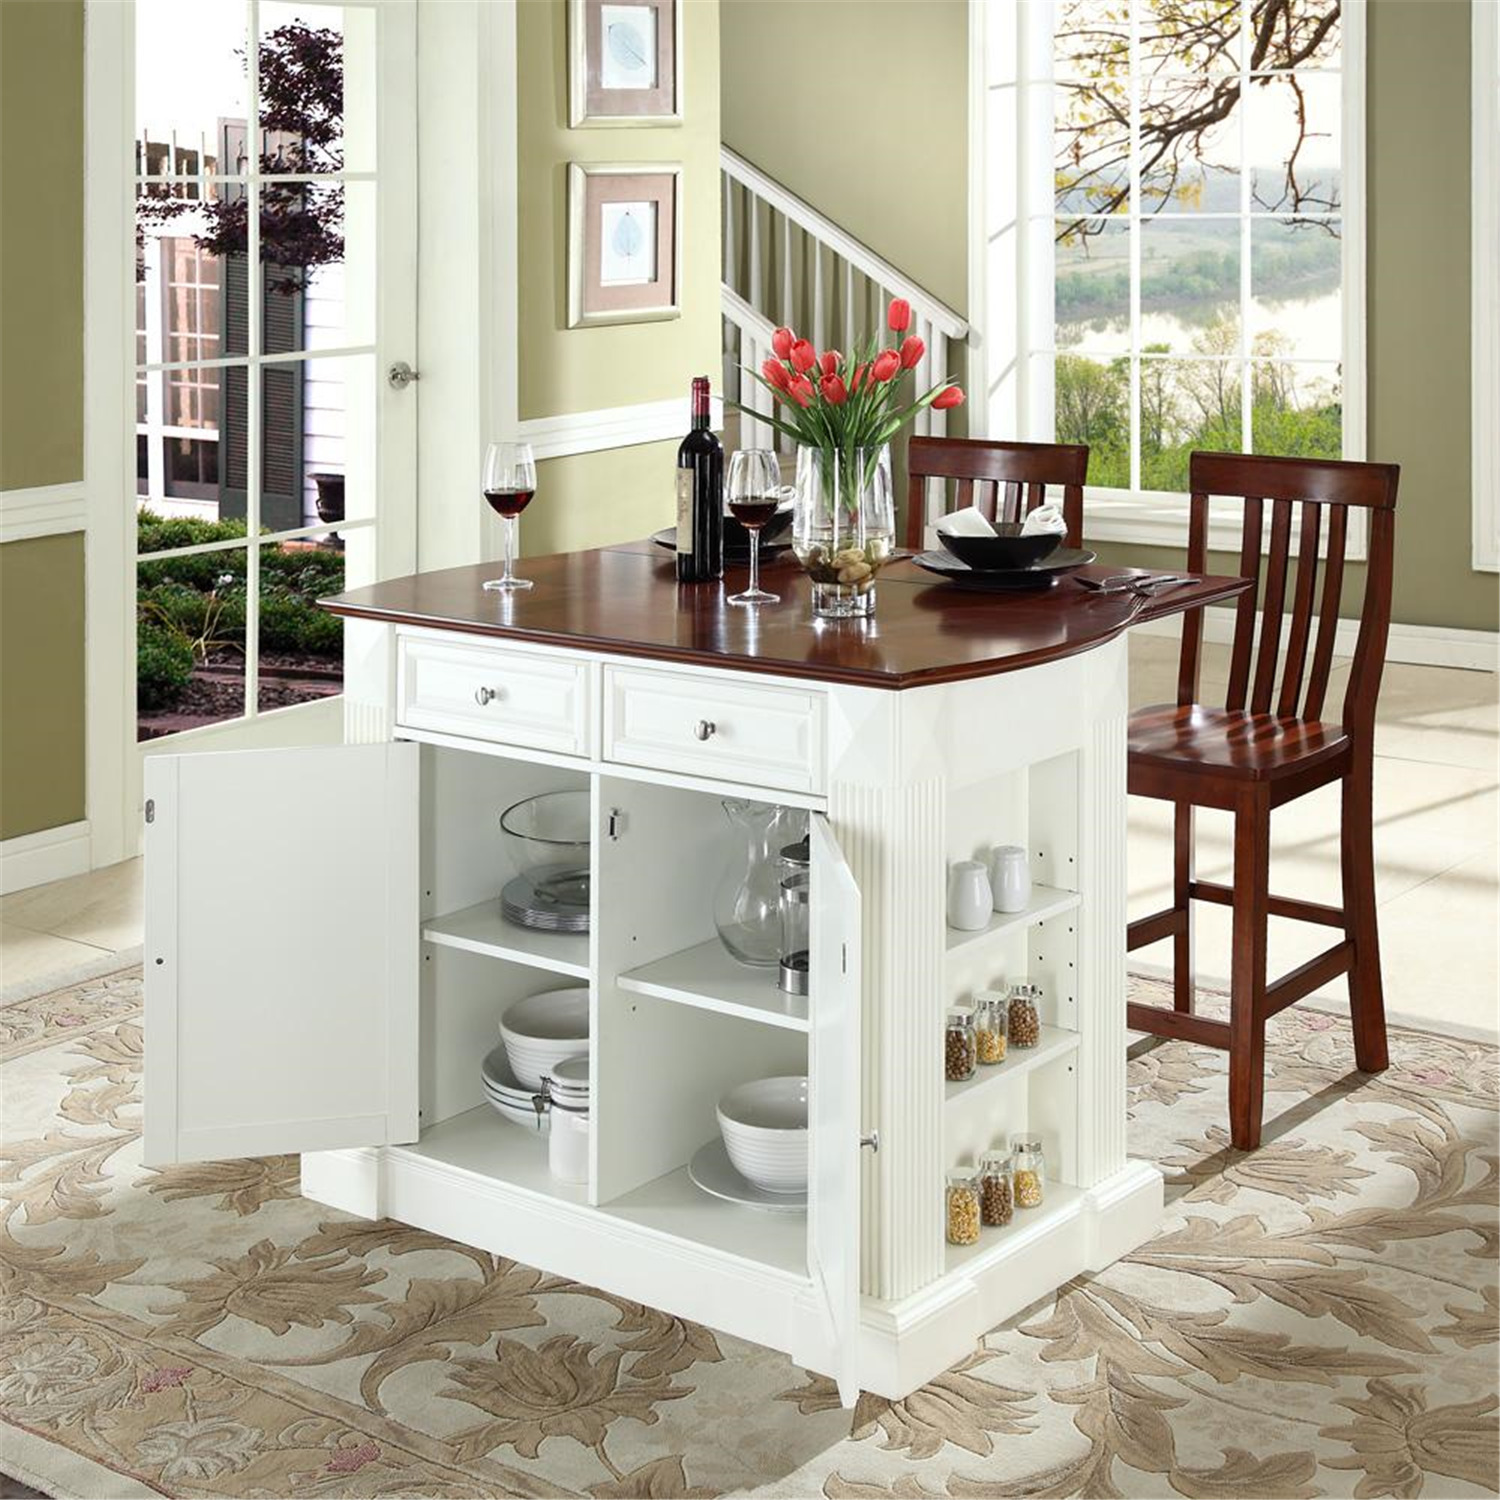 kitchen island on wheels with seating game furniture, home goods, appliances, athletic gear, fitness ...